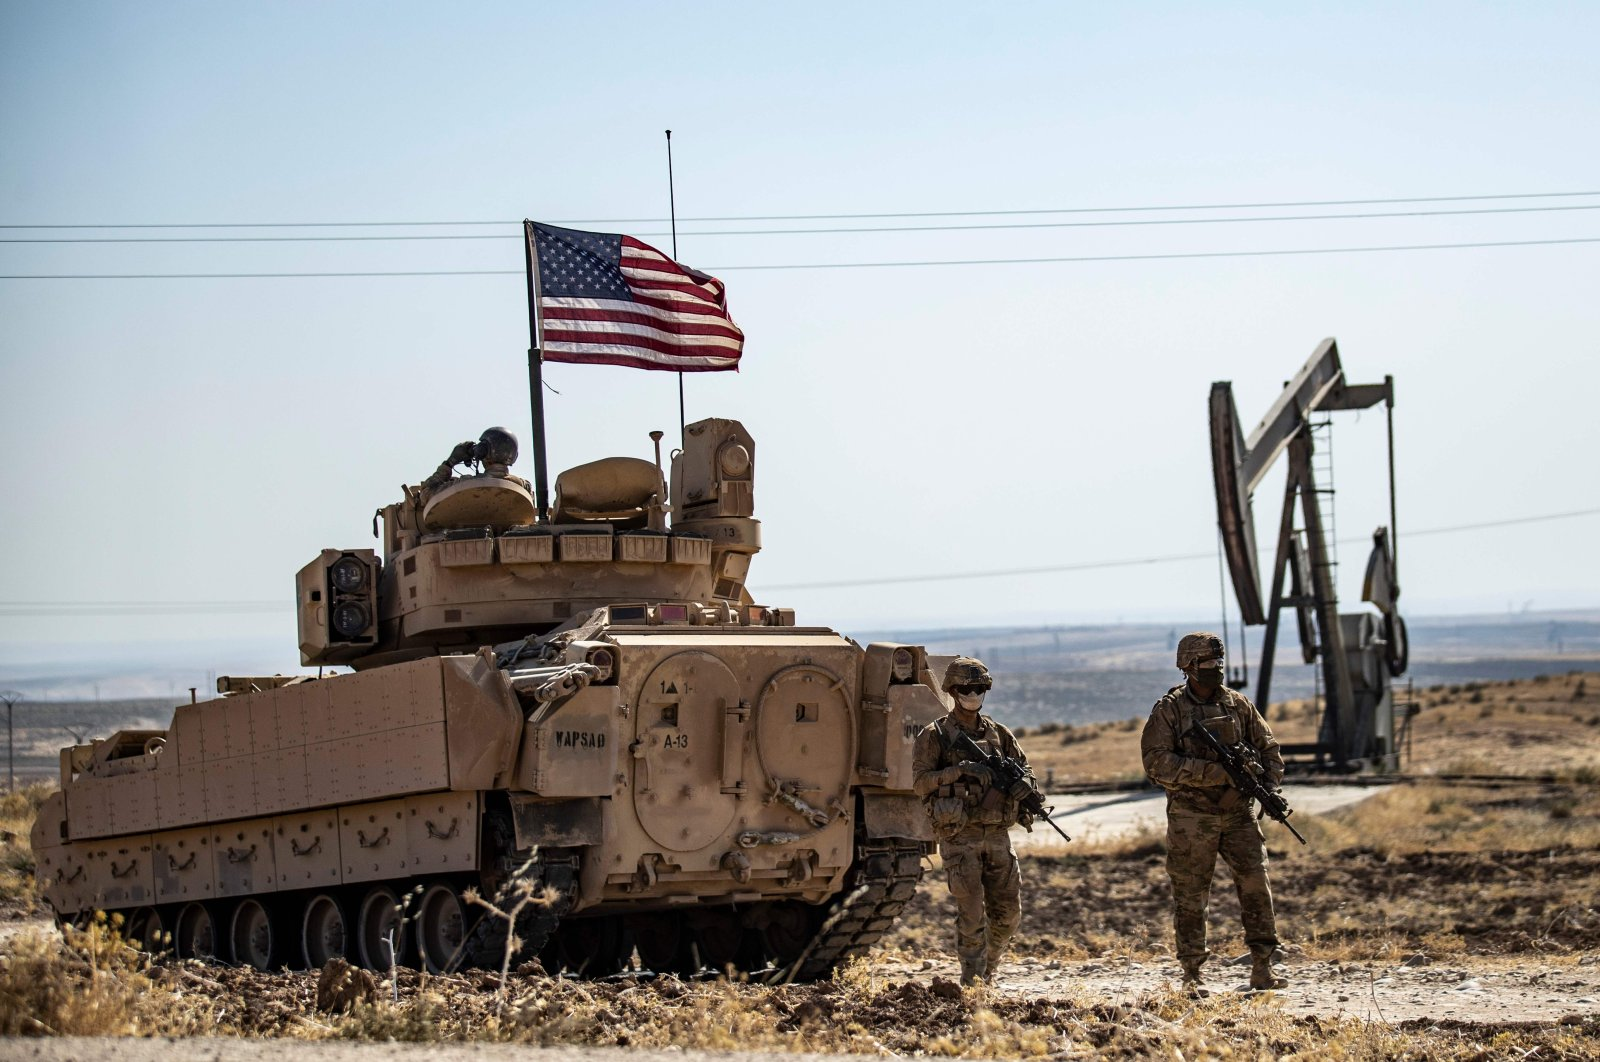 U.S. soldiers walk near a Bradley Fighting Vehicle (BFV) during a military patrol in northeastern Syria, Oct. 27, 2020. (AFP Photo)